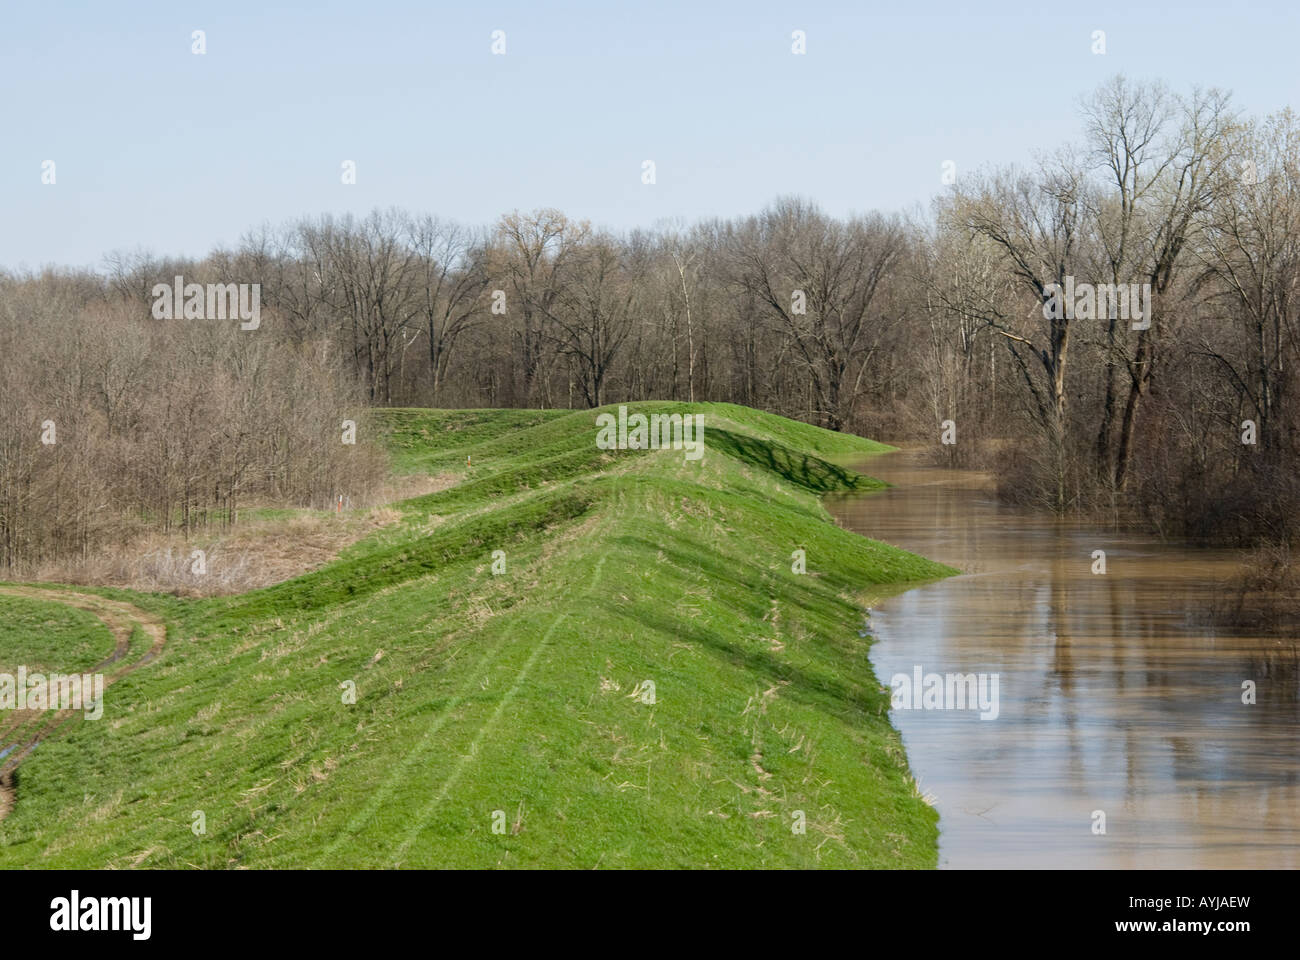 Catastrophic flooding of the White River nears a second ...